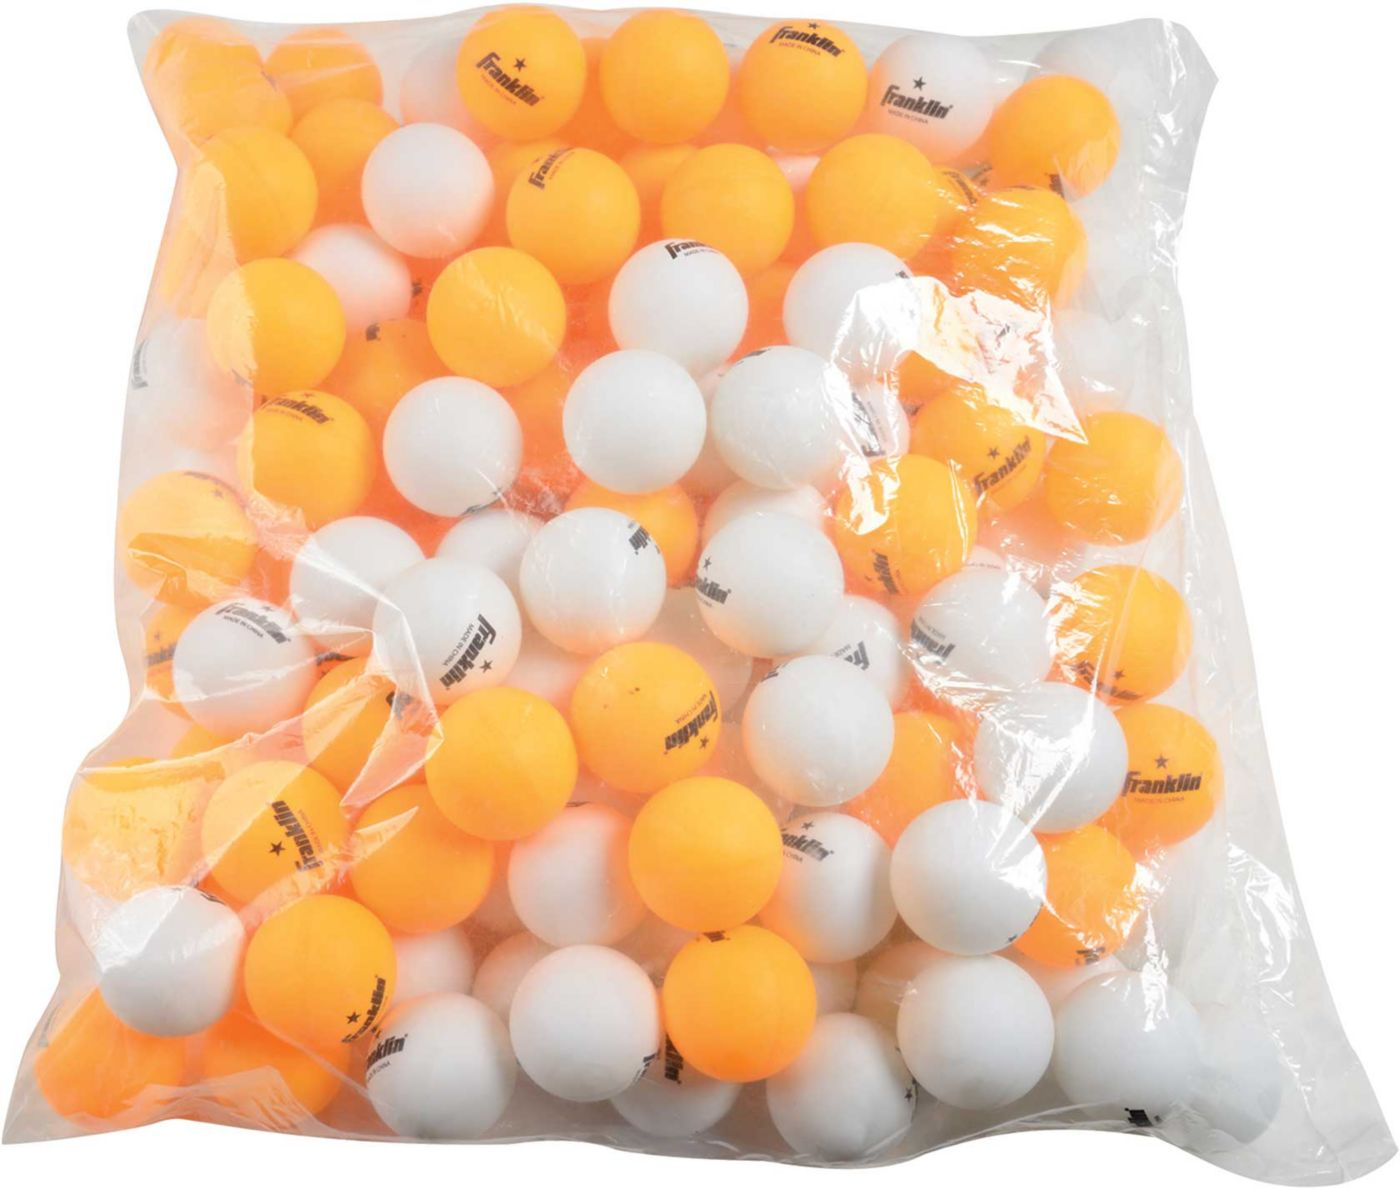 Franklin 144-Pack 40mm Table Tennis Balls